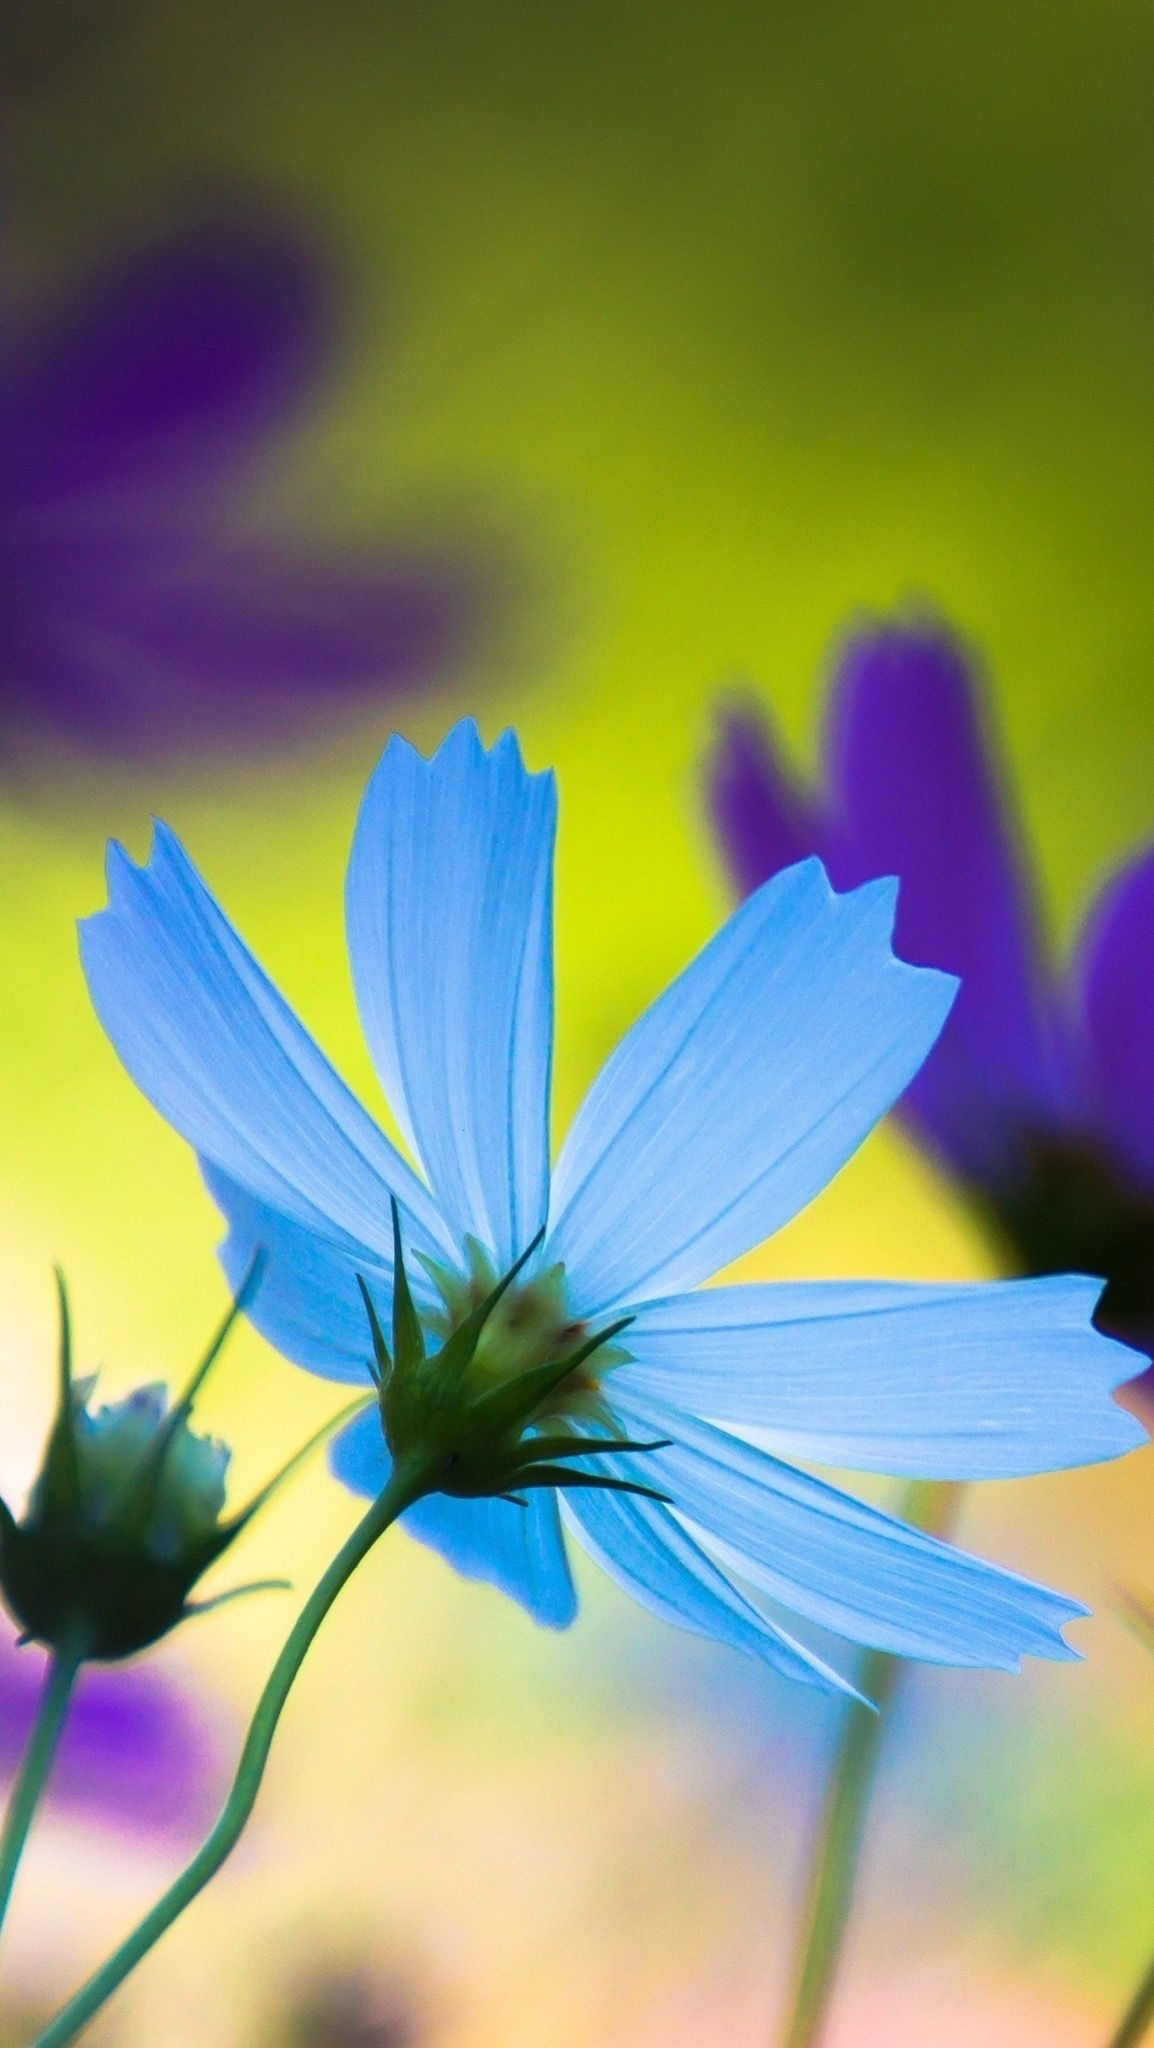 Pin by Angelica Arroyo on Wallpapers | Blue flower ...